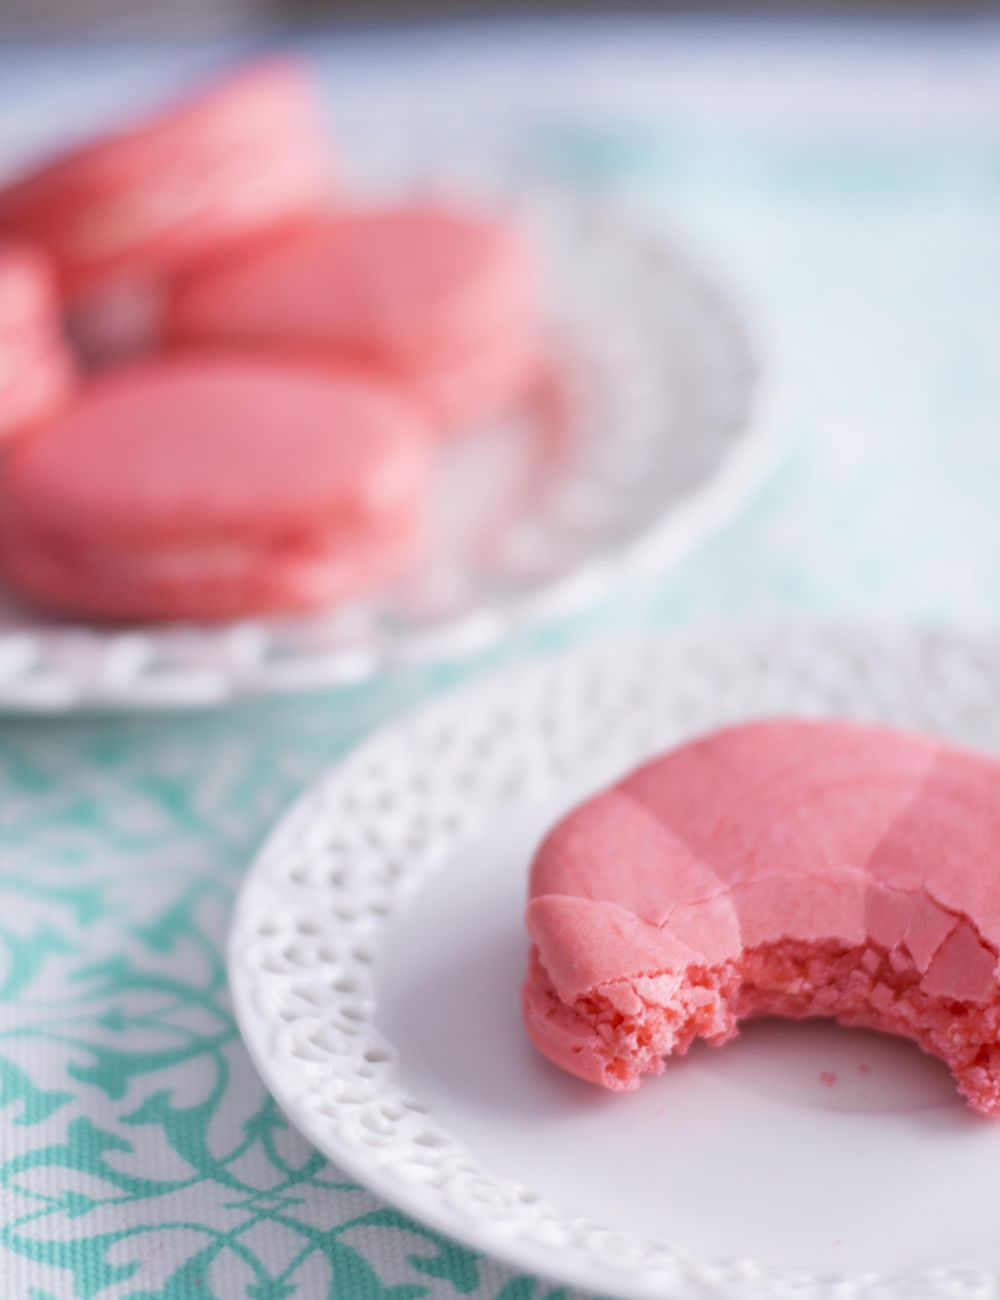 French Macarons - image 3 - student project